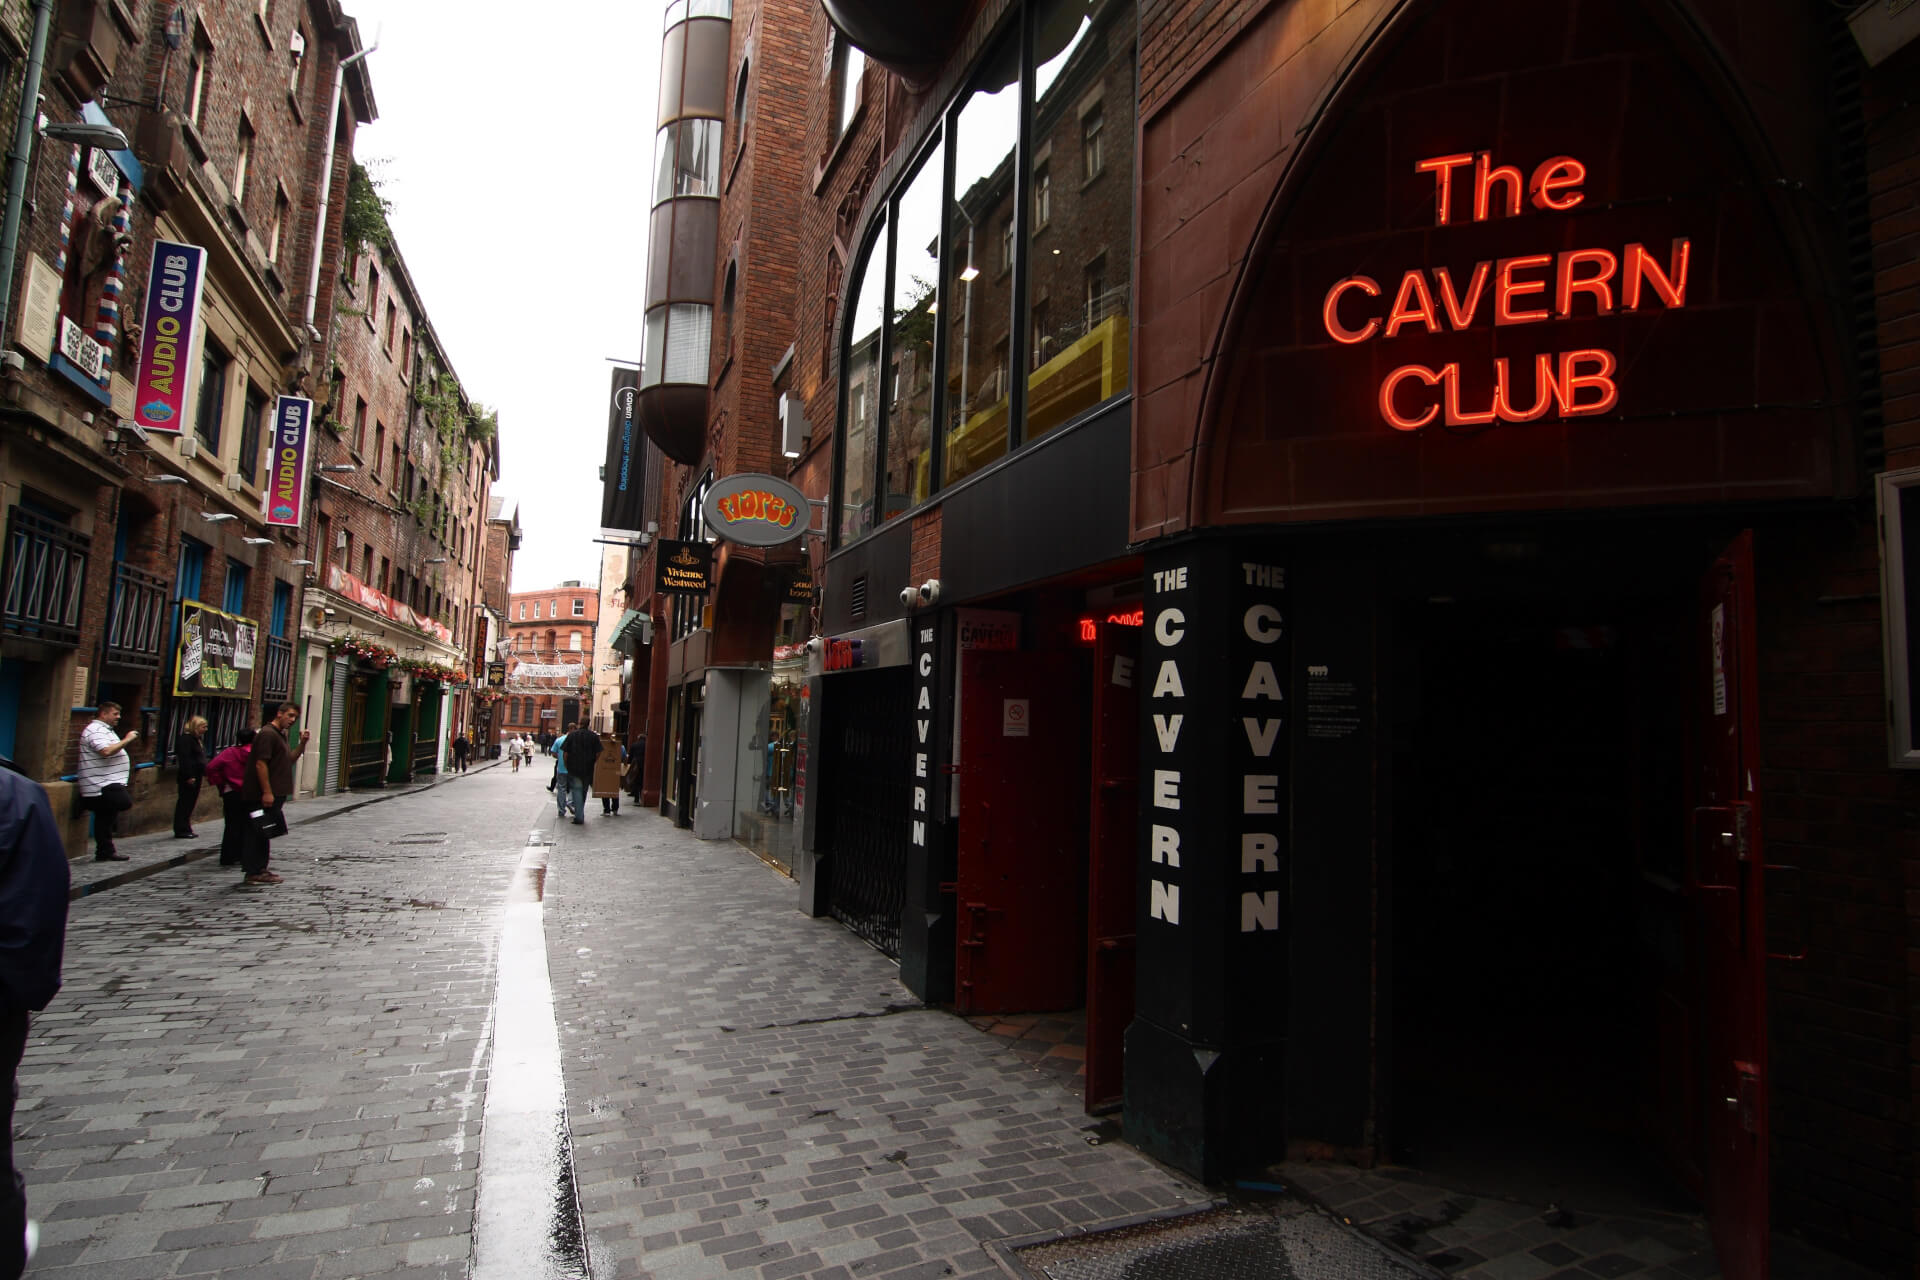 https://i0.wp.com/www.baseservicedapartments.co.uk/wp-content/uploads/2016/01/Cavern_Club_Liverpool_England1.jpg